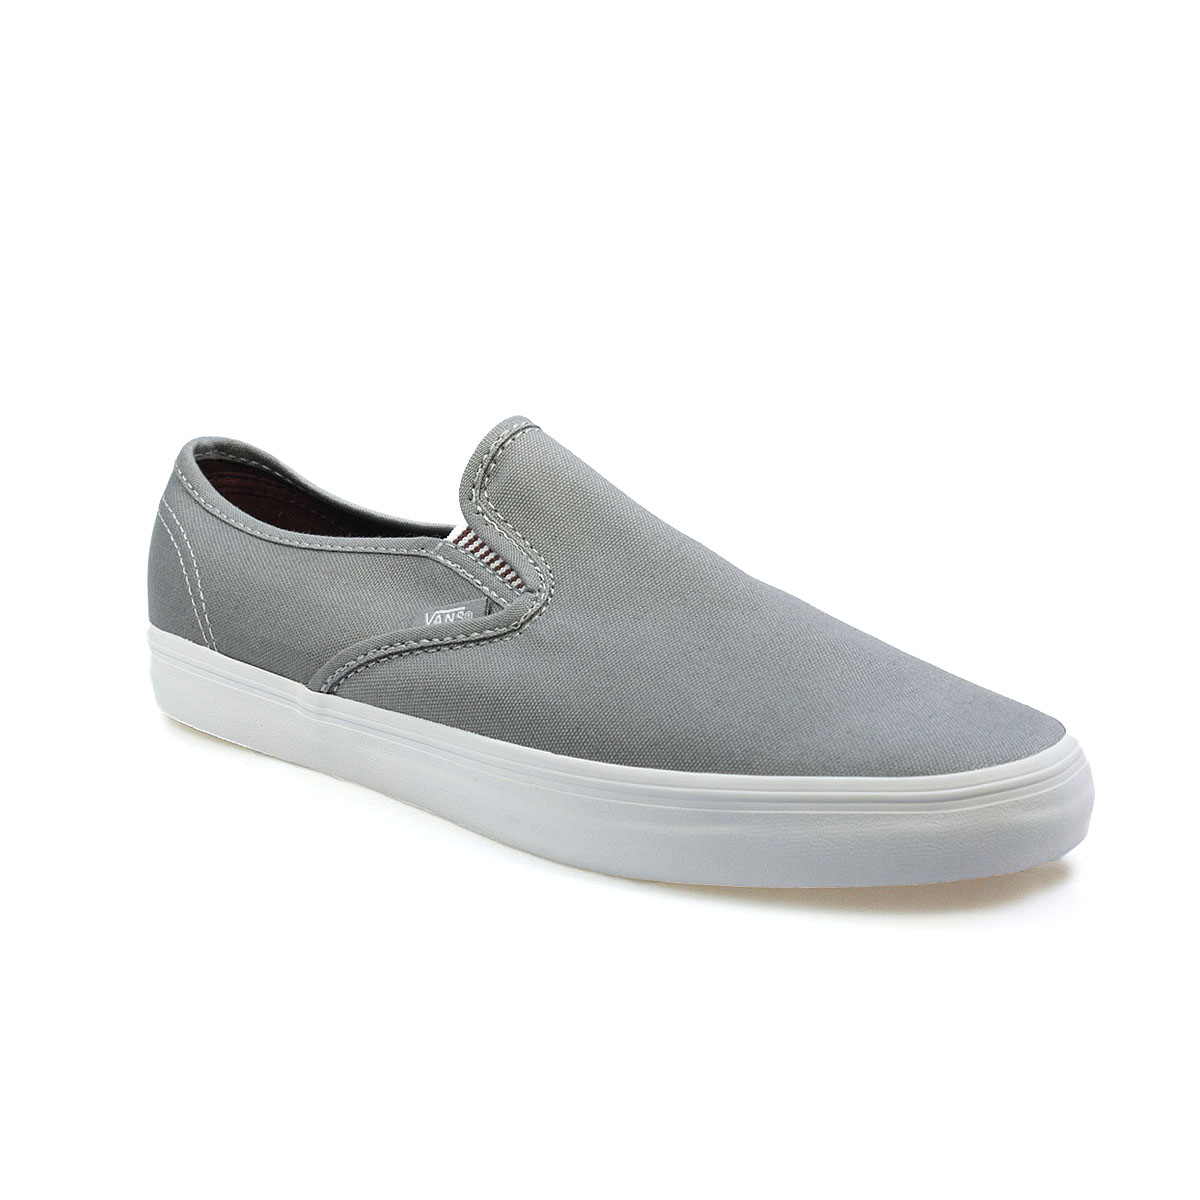 vans lp slip on mens stripe grey white canvas shoes